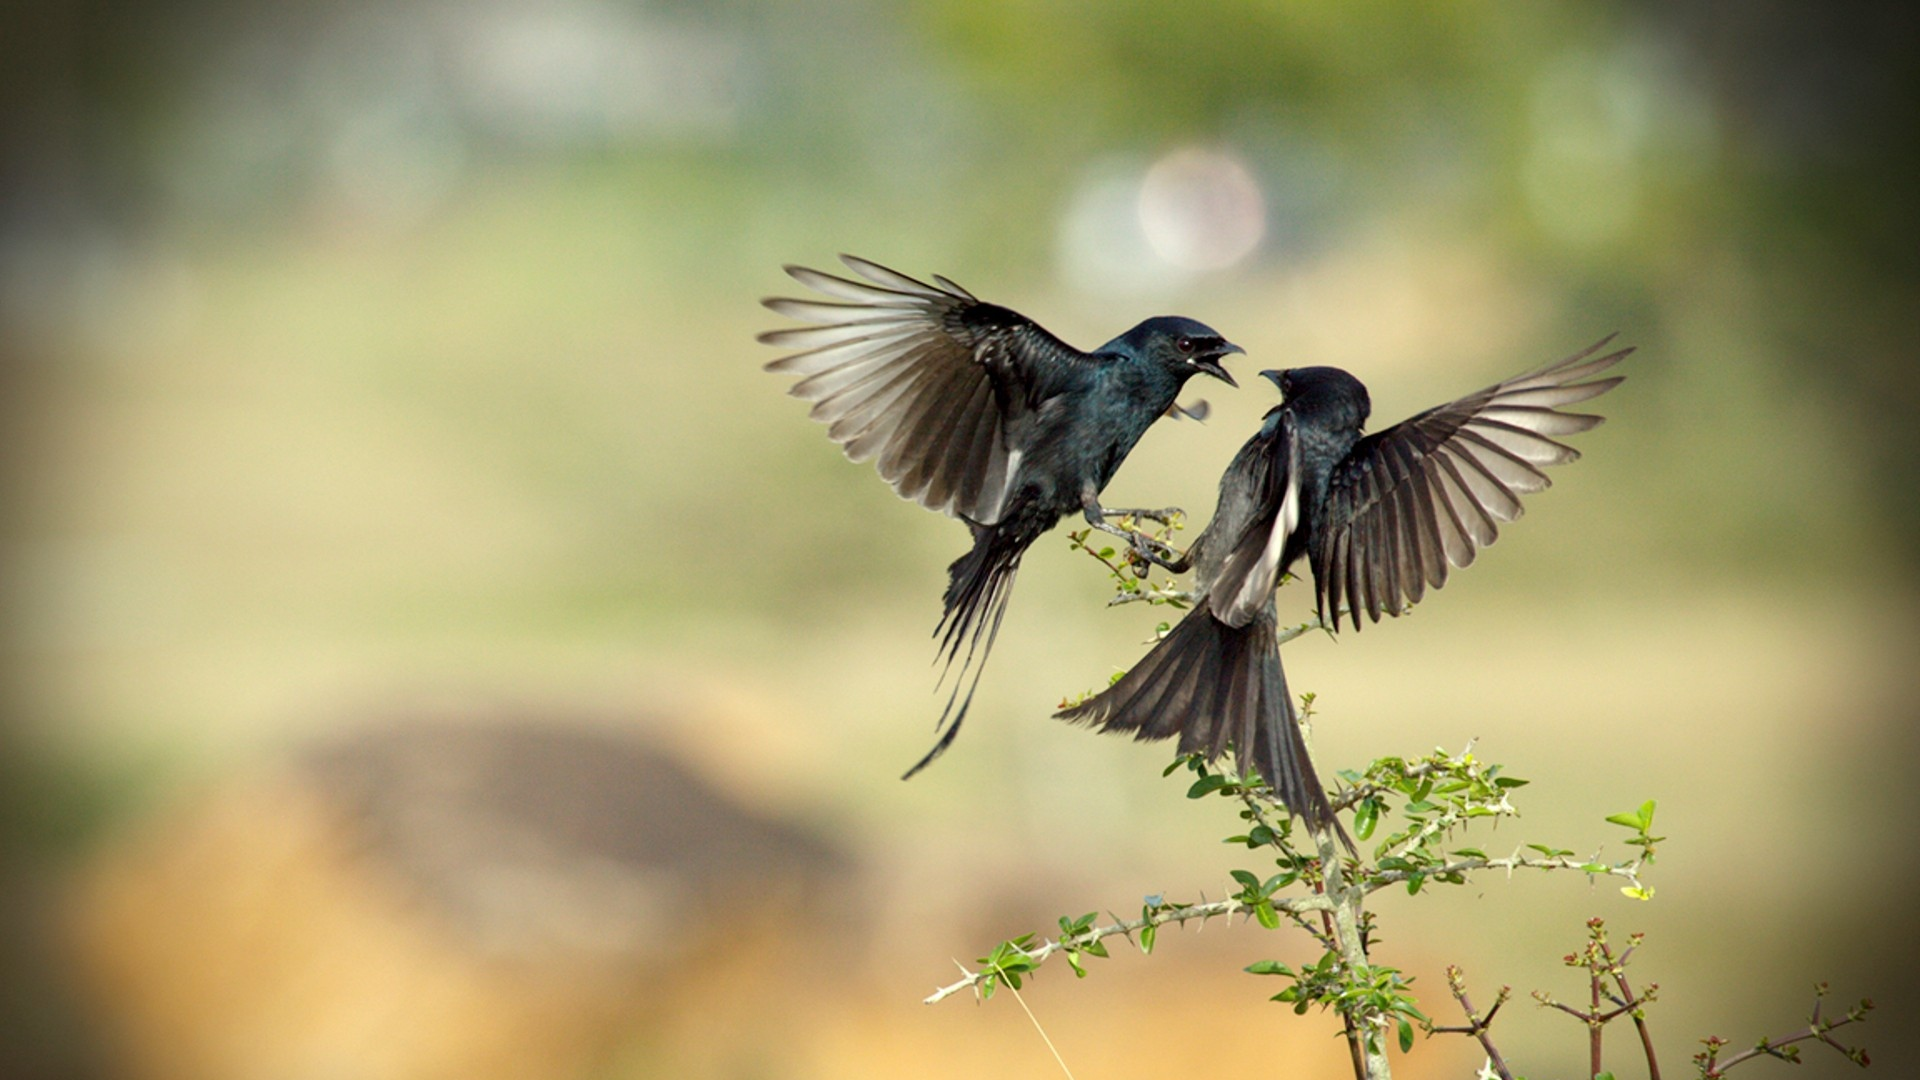 Download Wallpaper 1920x1080 birds flight fight branches Full